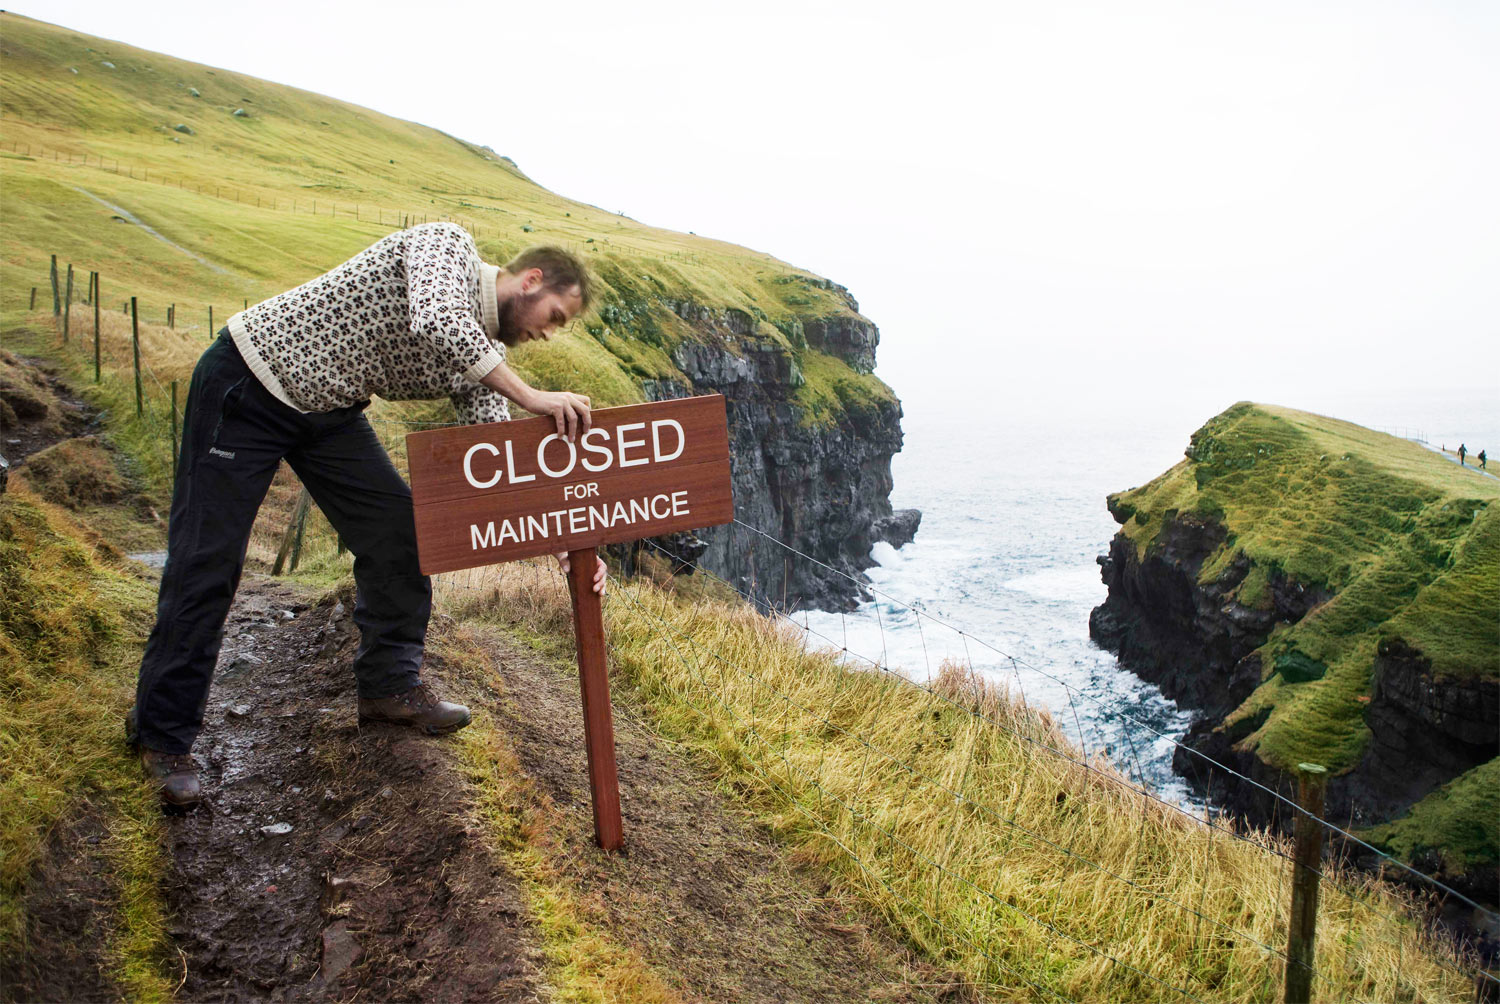 Faroe Islands to Close For Maintenance, and Open For Voluntourism 5